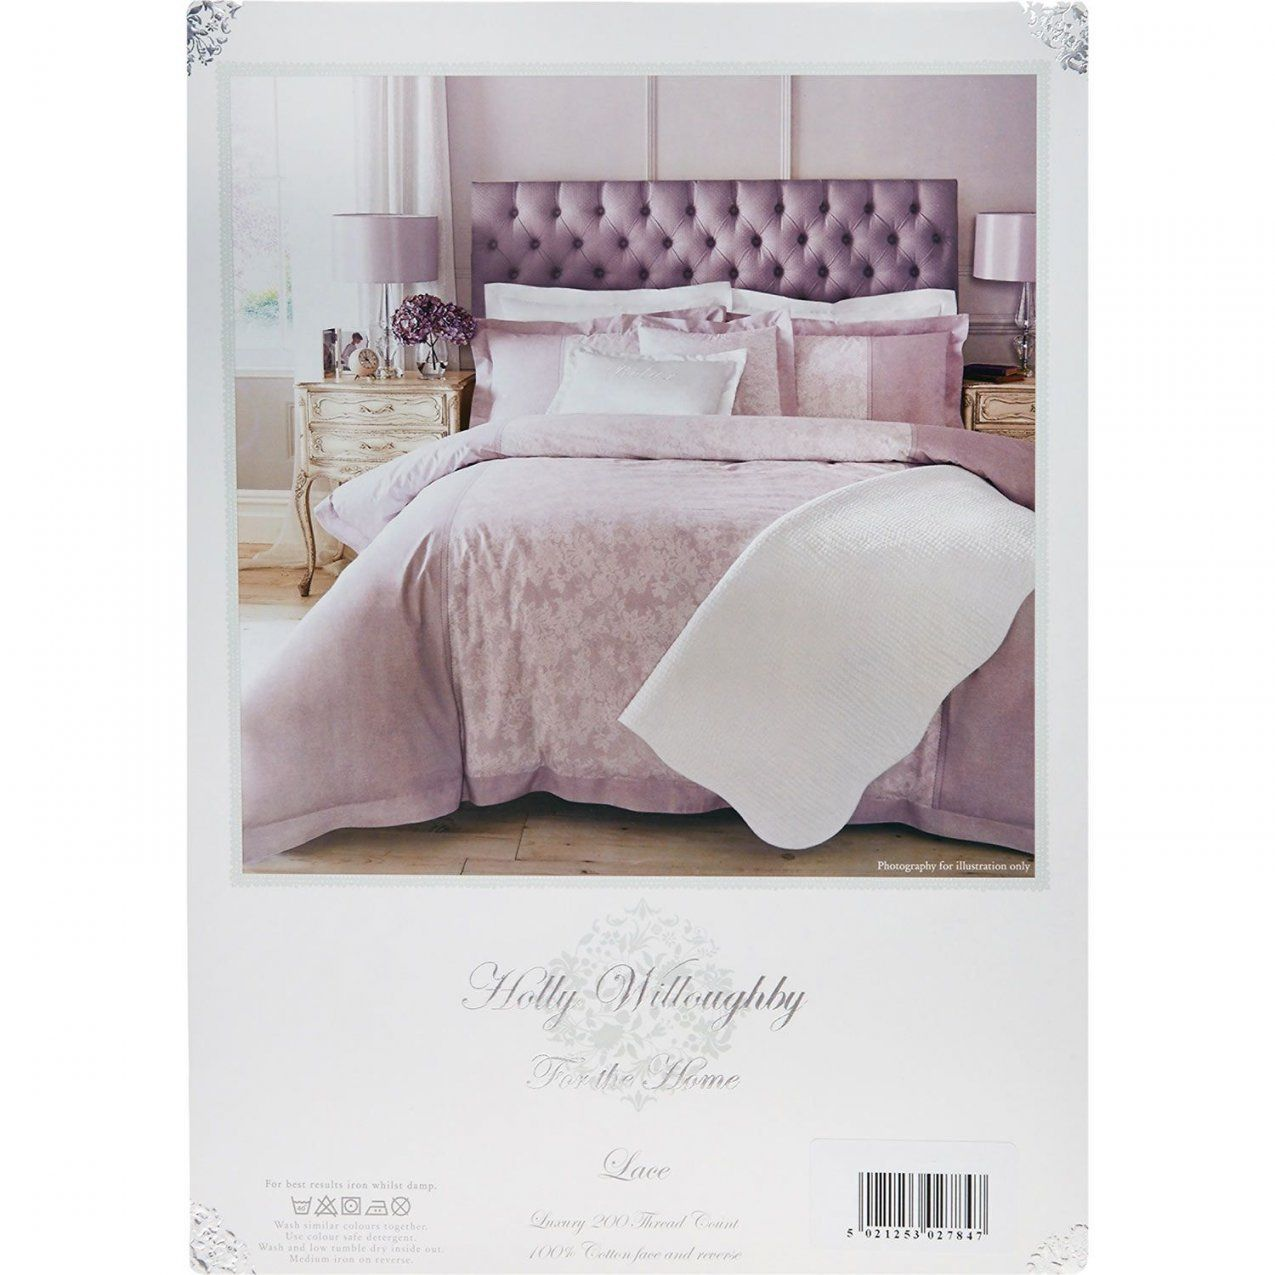 "Holly Willoughby"" King Heather Lace Print Duvet Cover 200Tc  Tk von Tk Maxx Bettwäsche Bild"